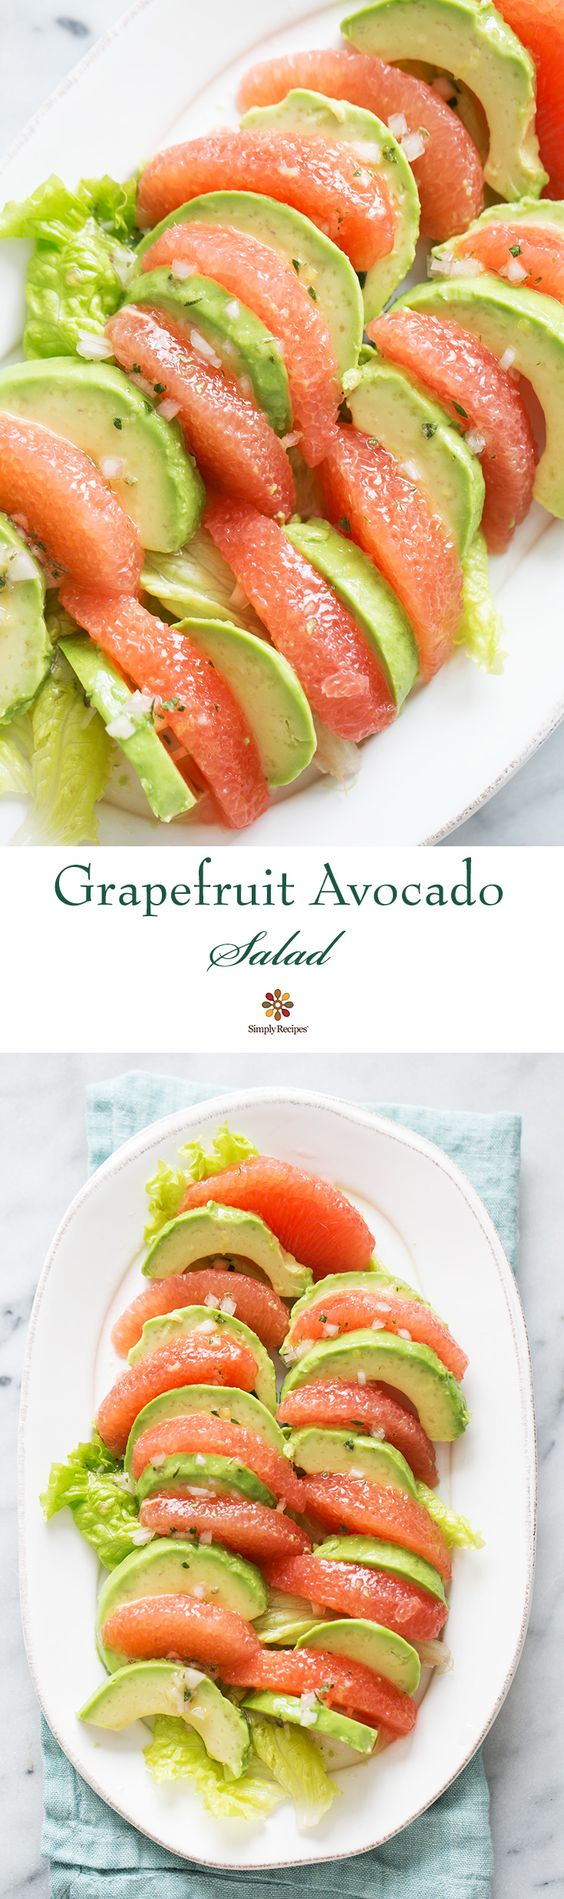 Grapefruit Avocado Salad ~ Grapefruit avocado salad. Peeled segments of…